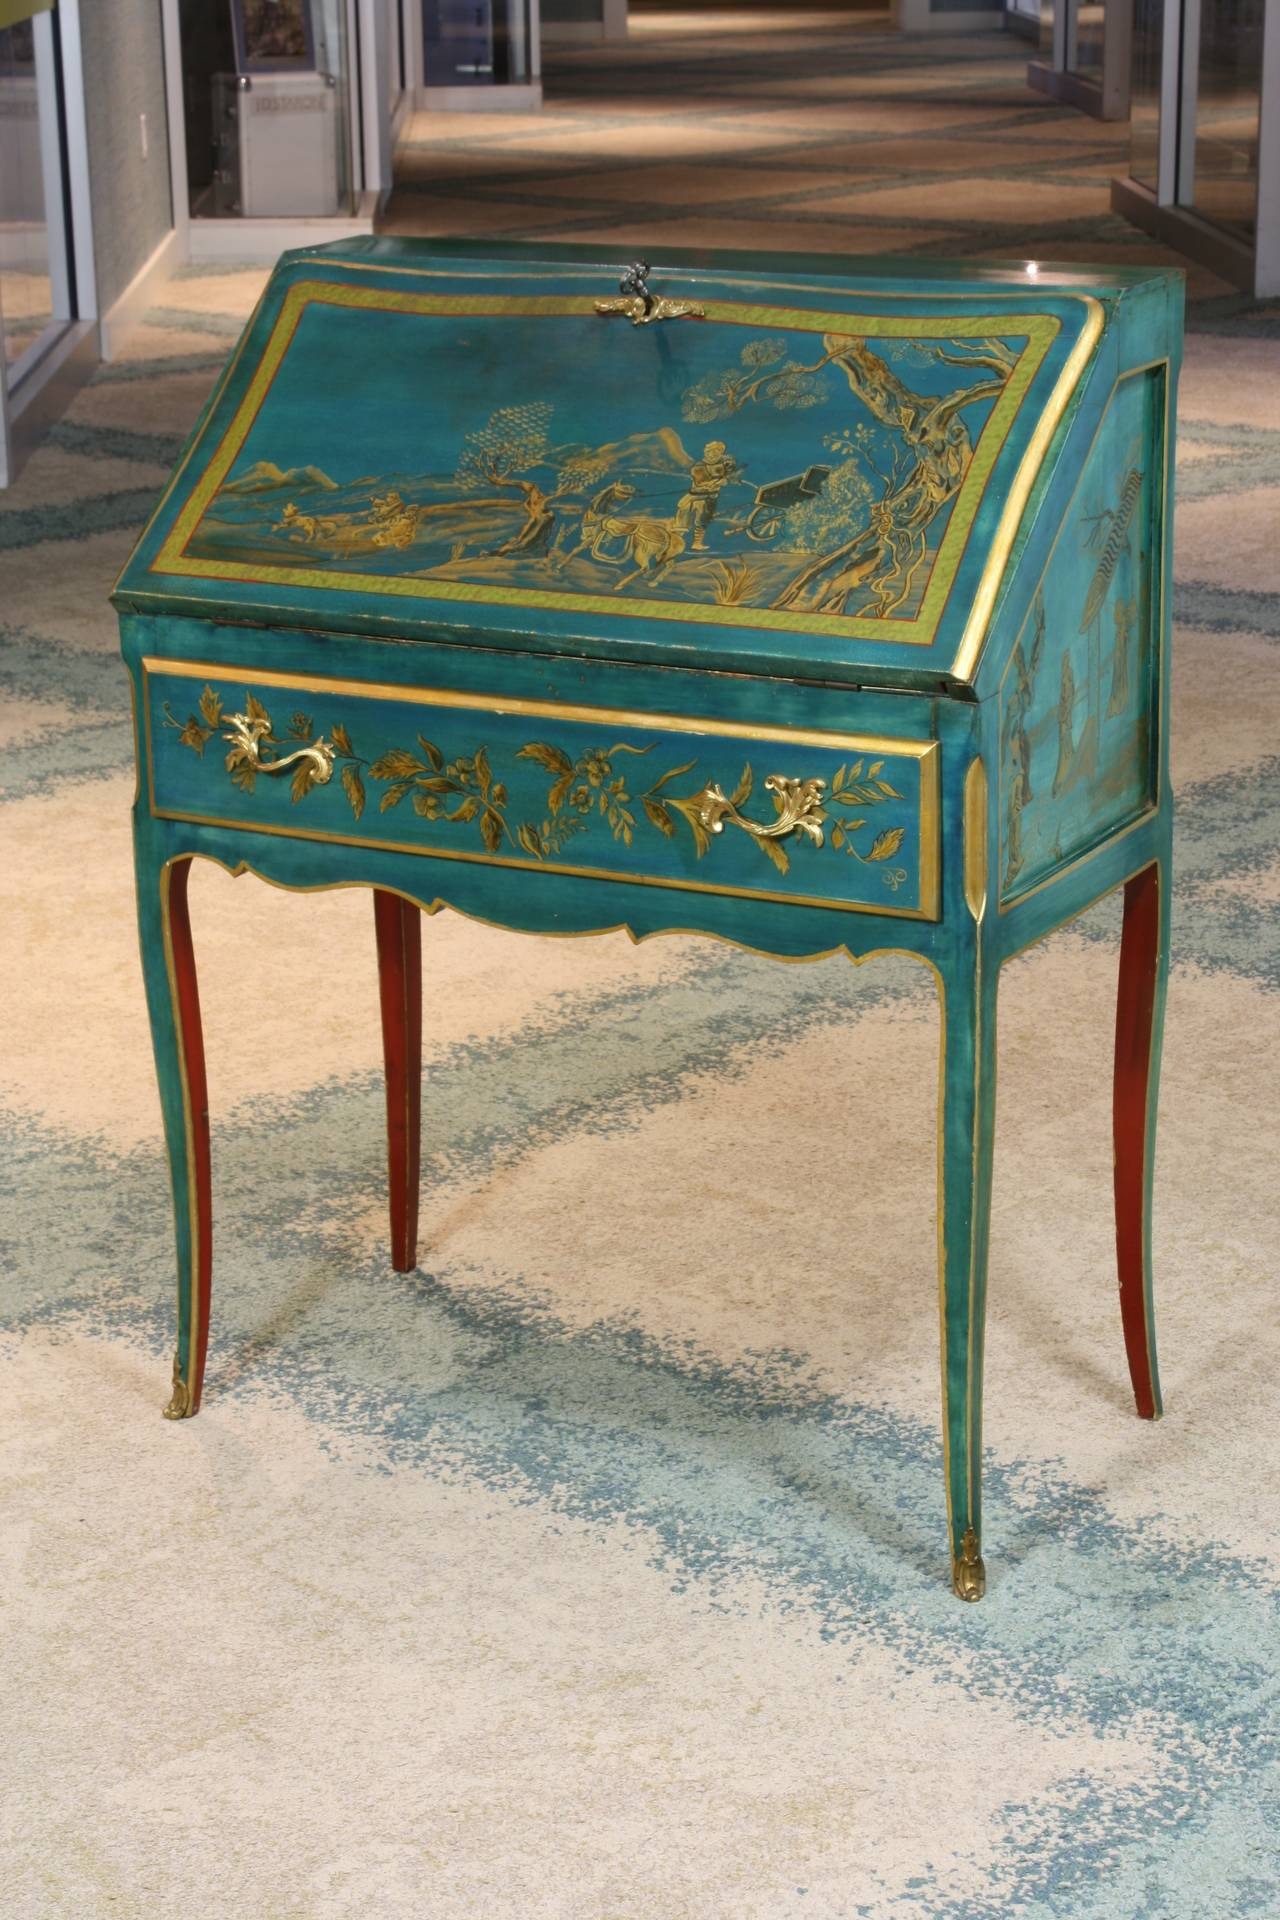 Louis XV Style Chinoiserie Slant-Top Desk In Good Condition For Sale In Pembroke, MA